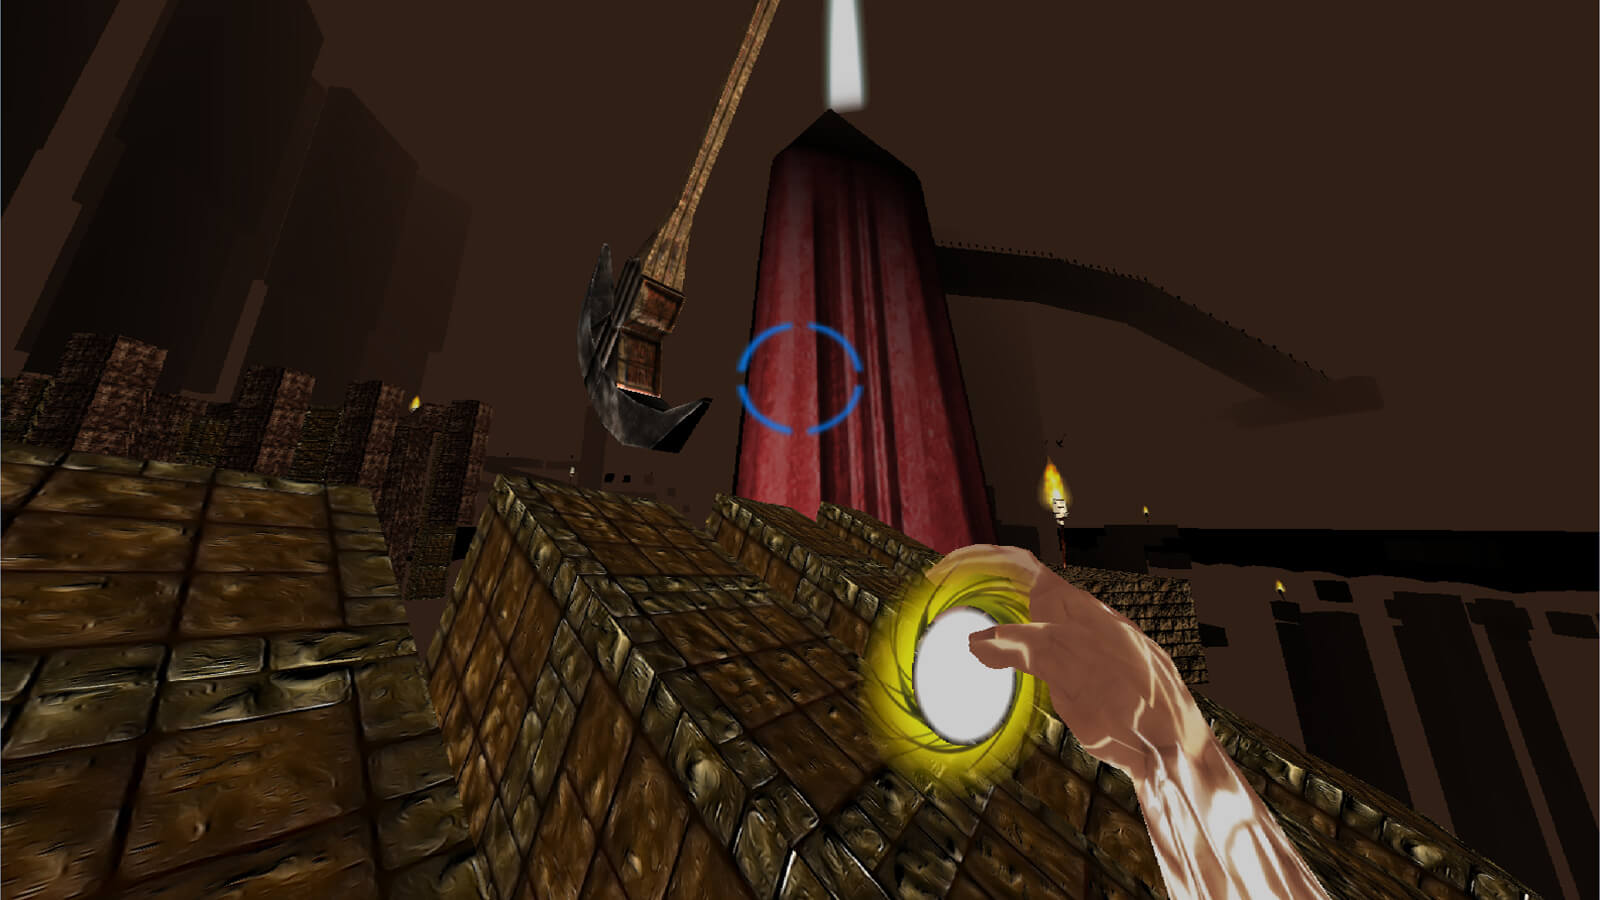 First-person view of the player on a sloped, stone terrain holding a yellow ball of light. A giant pendulum is seen ahead.